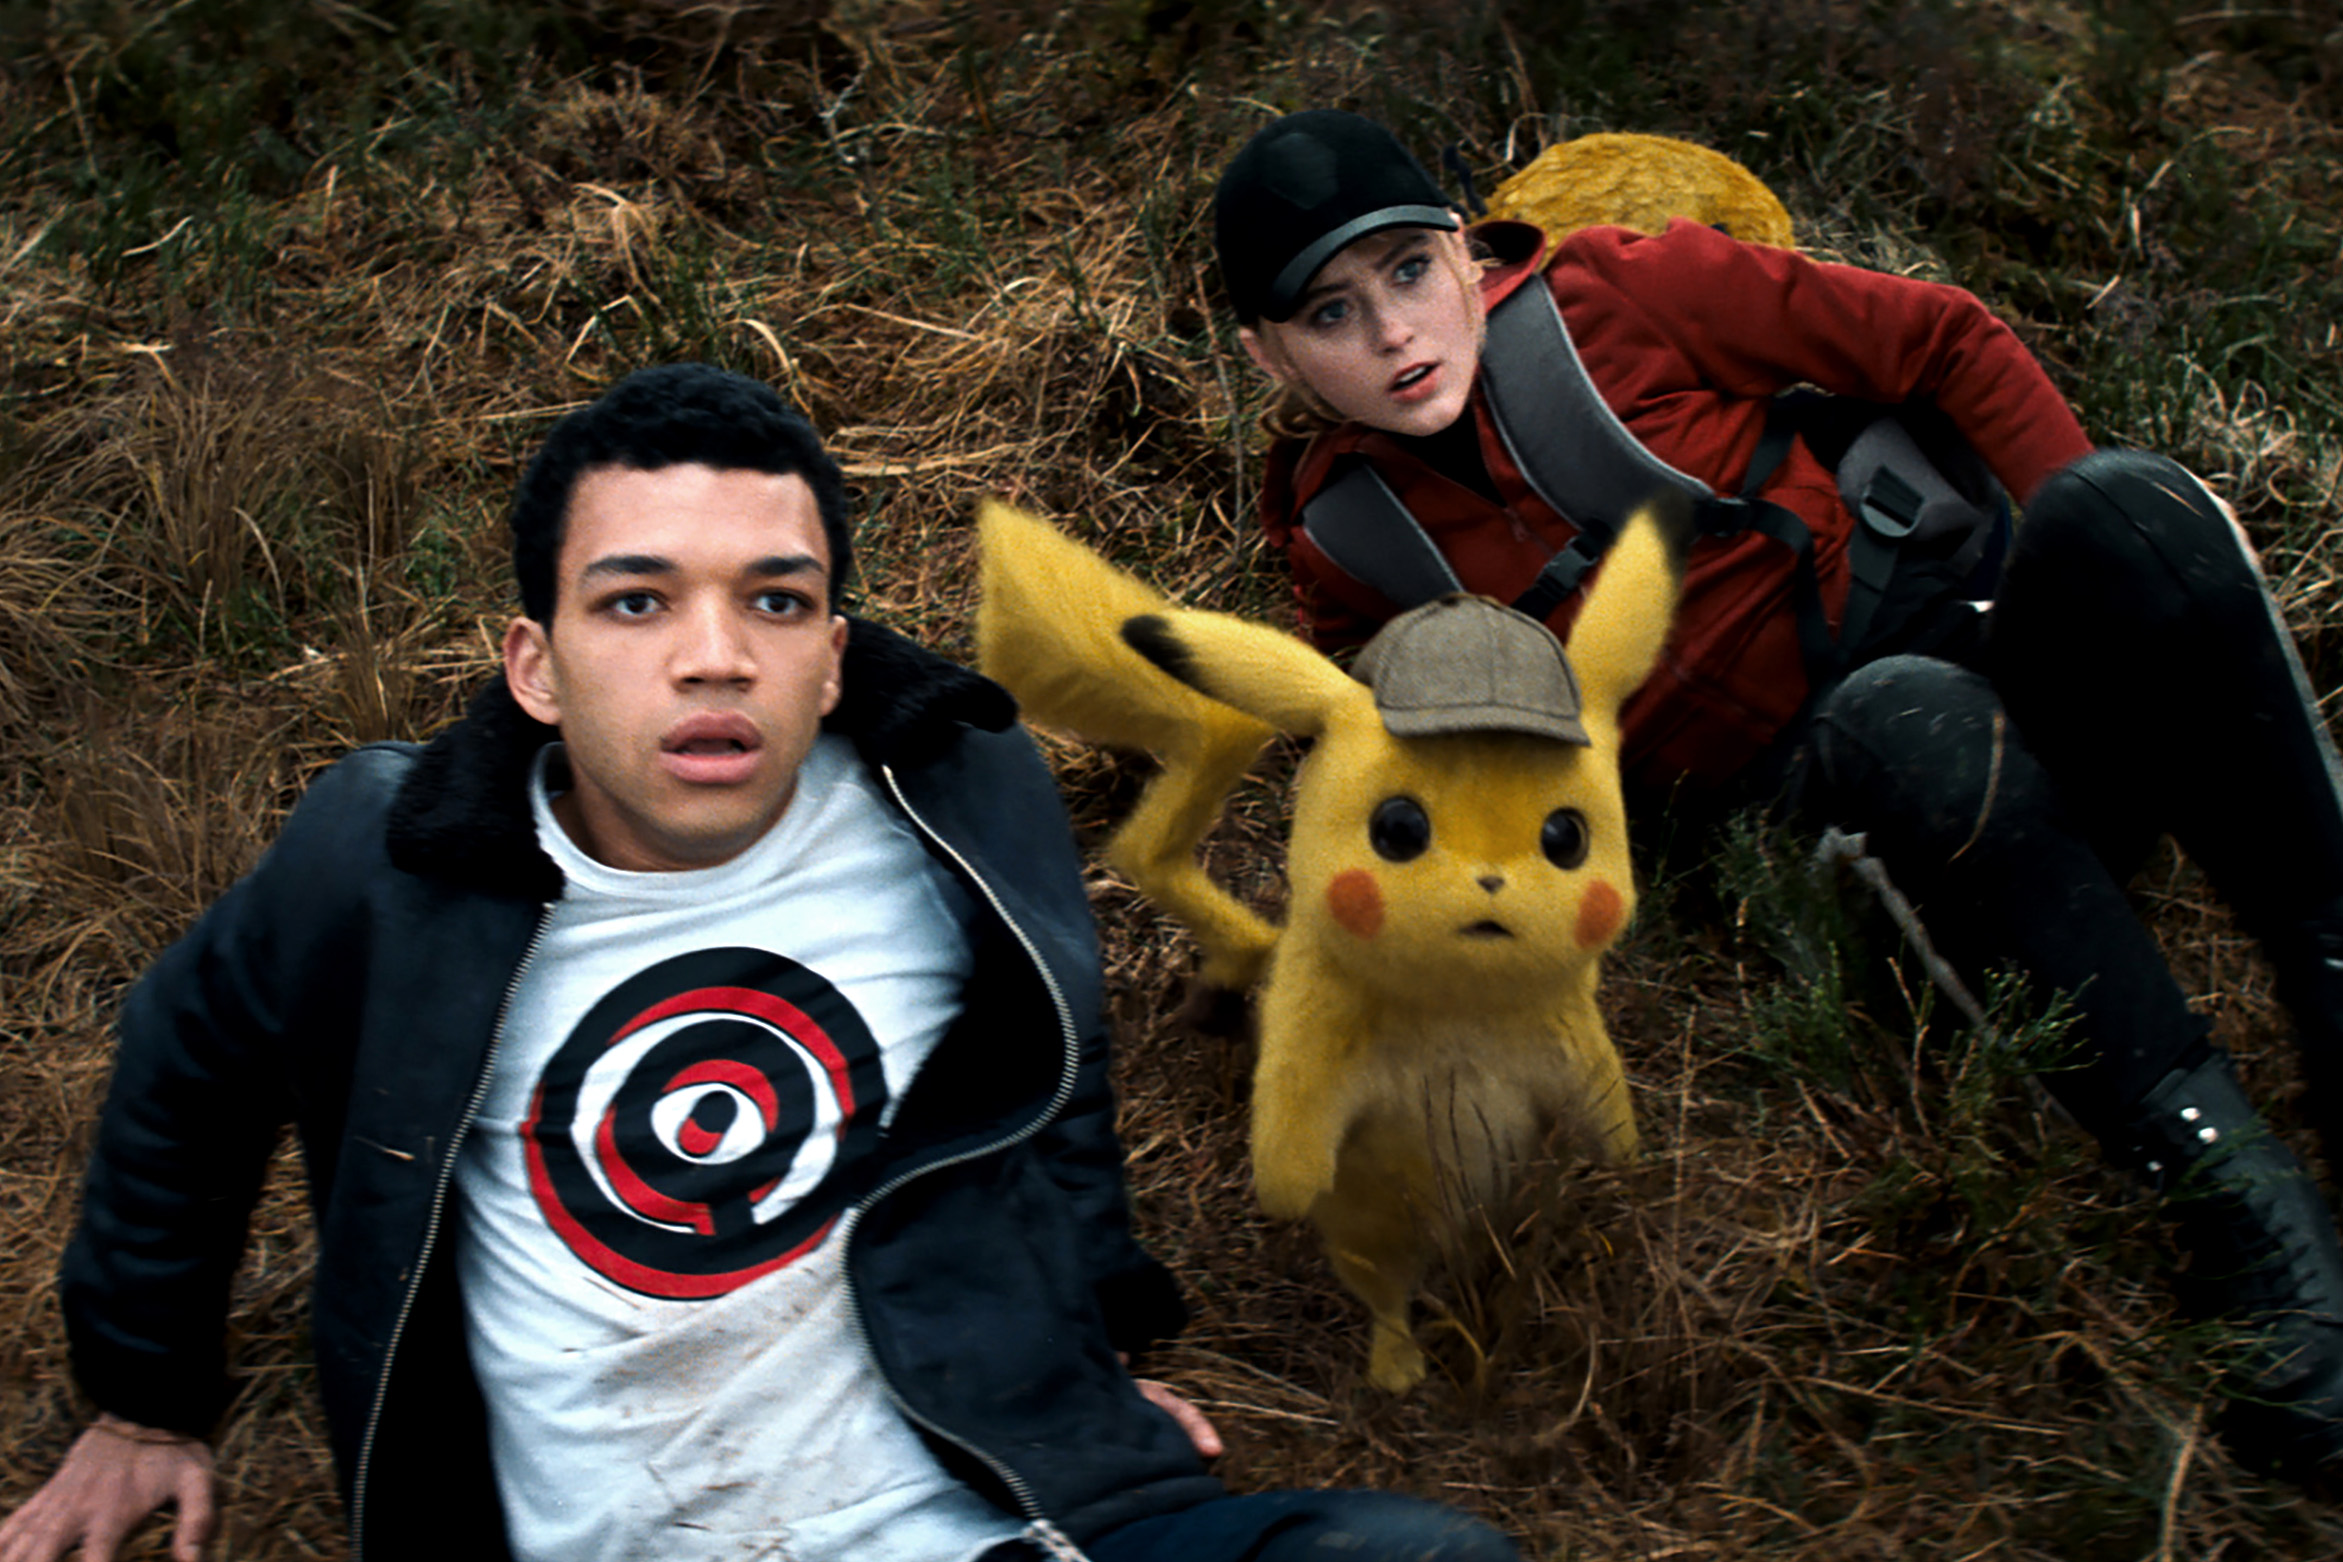 Justice Smith, Detective Pikachu (voiced by Ryan Reynolds), and Kathryn Newton appear in the movie